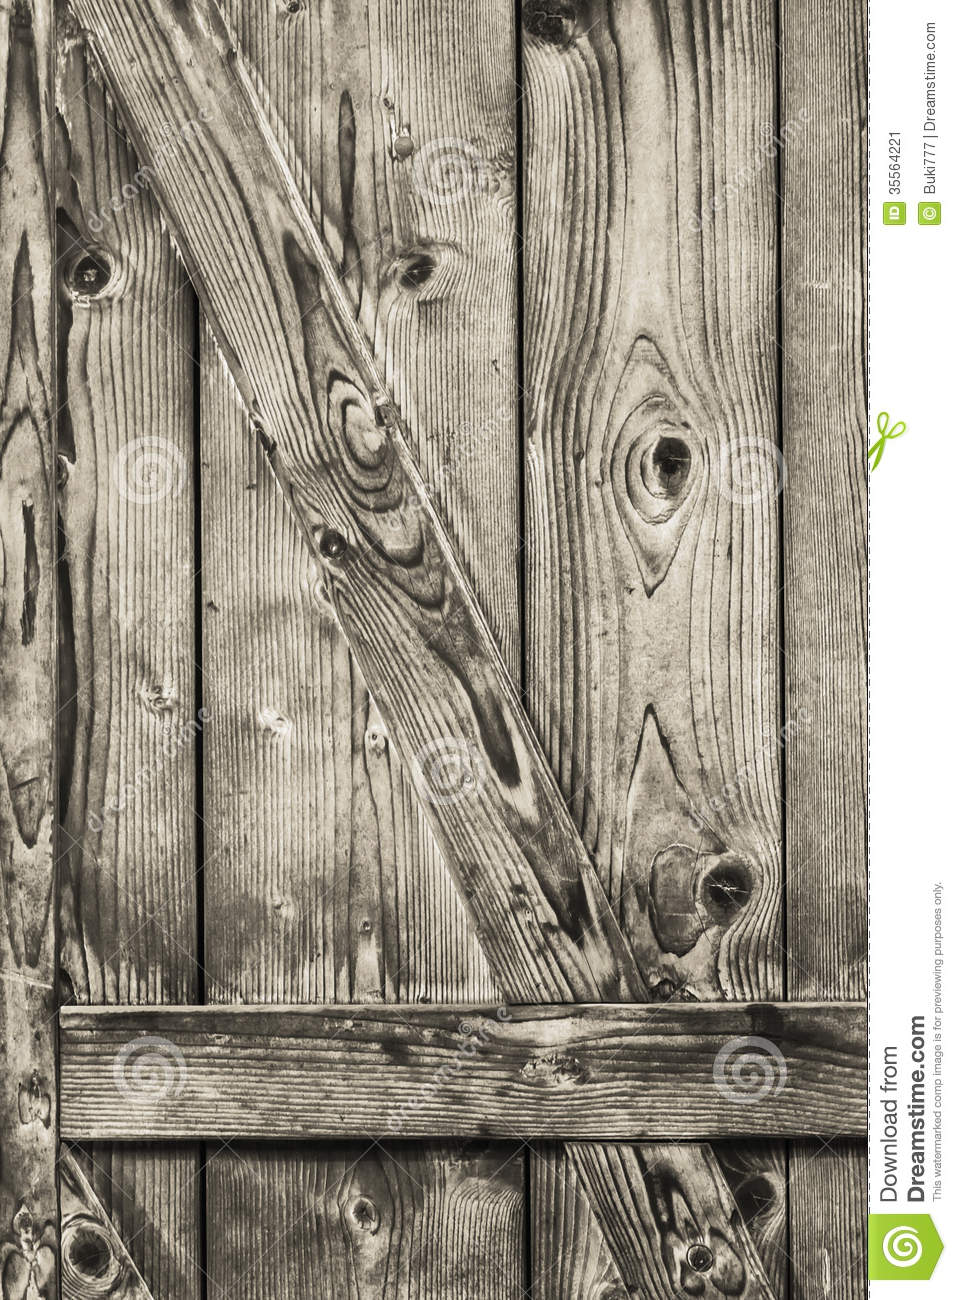 Antique Rustic Pine Wood Barn Door.